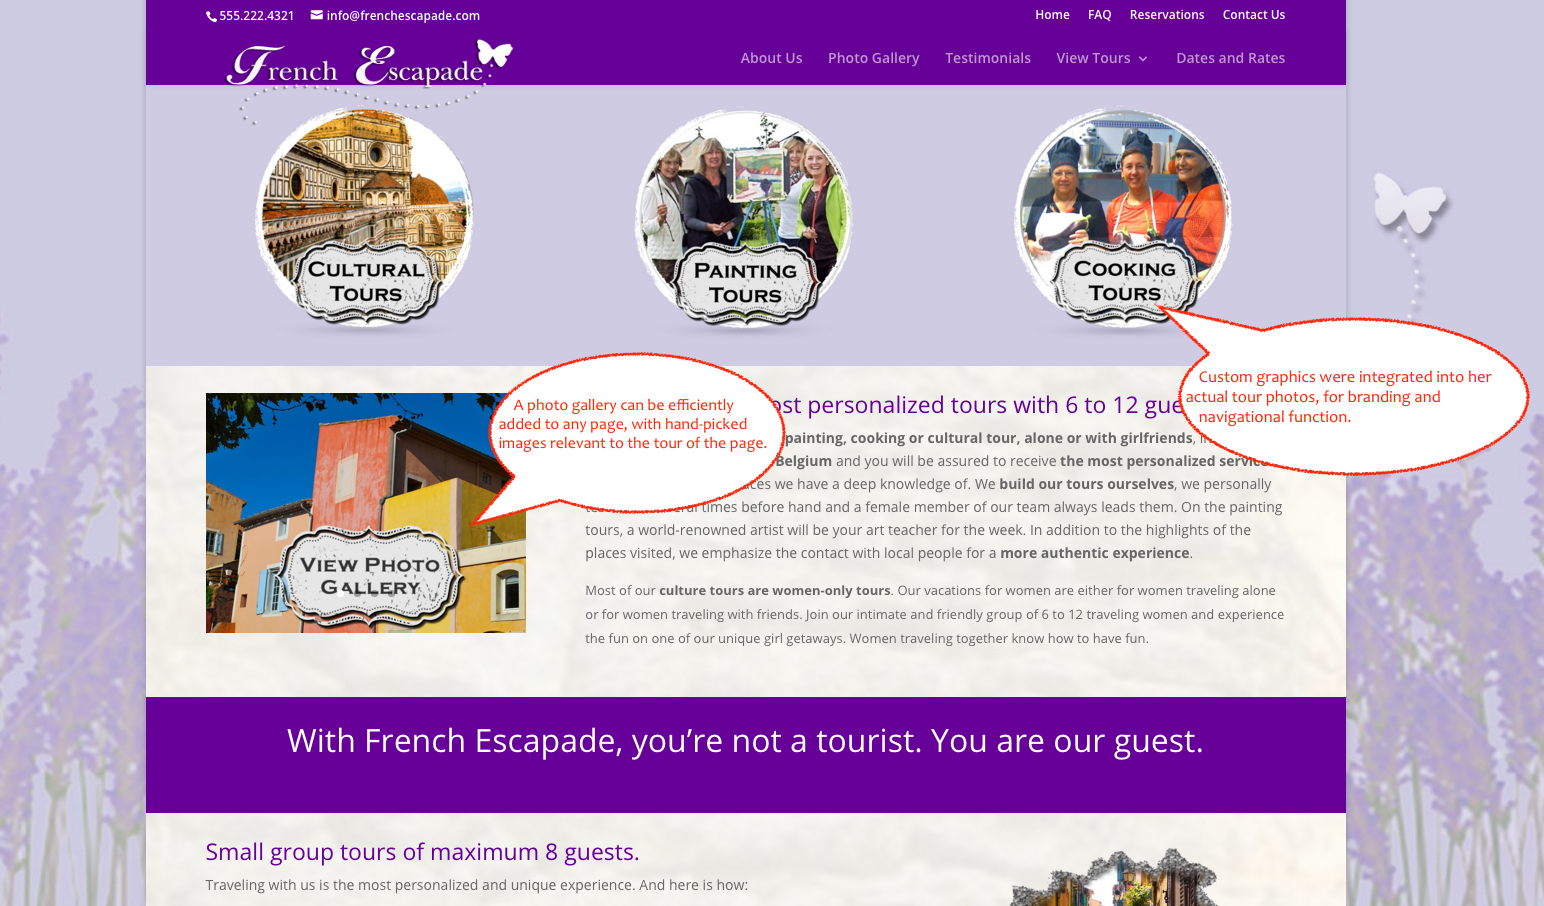 French Escapade Photo Gallery - Another Awesome qualiant Web Design Project